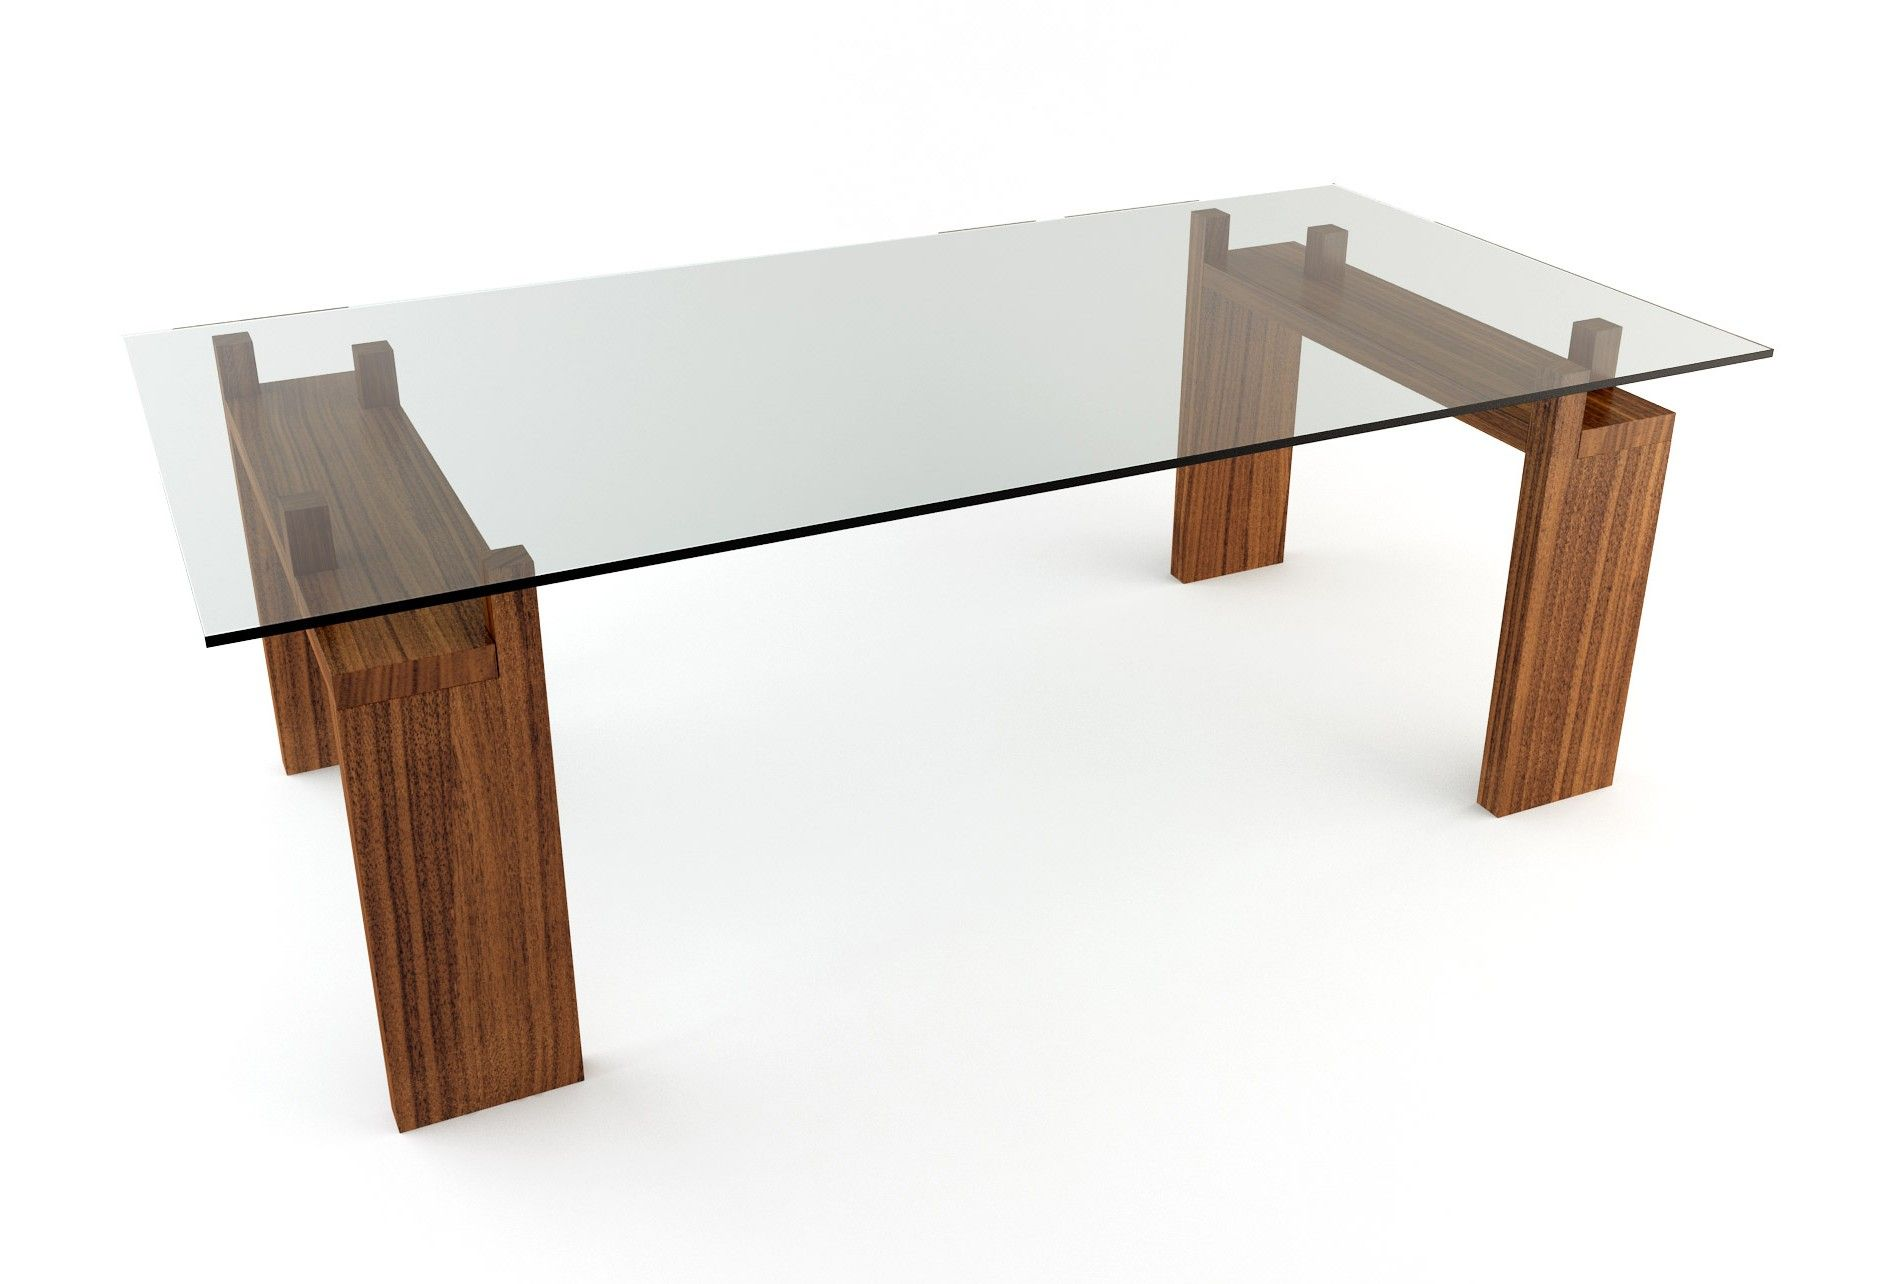 Knar Rectangular Dining Tables Viesso 1 102 00 Glass Top